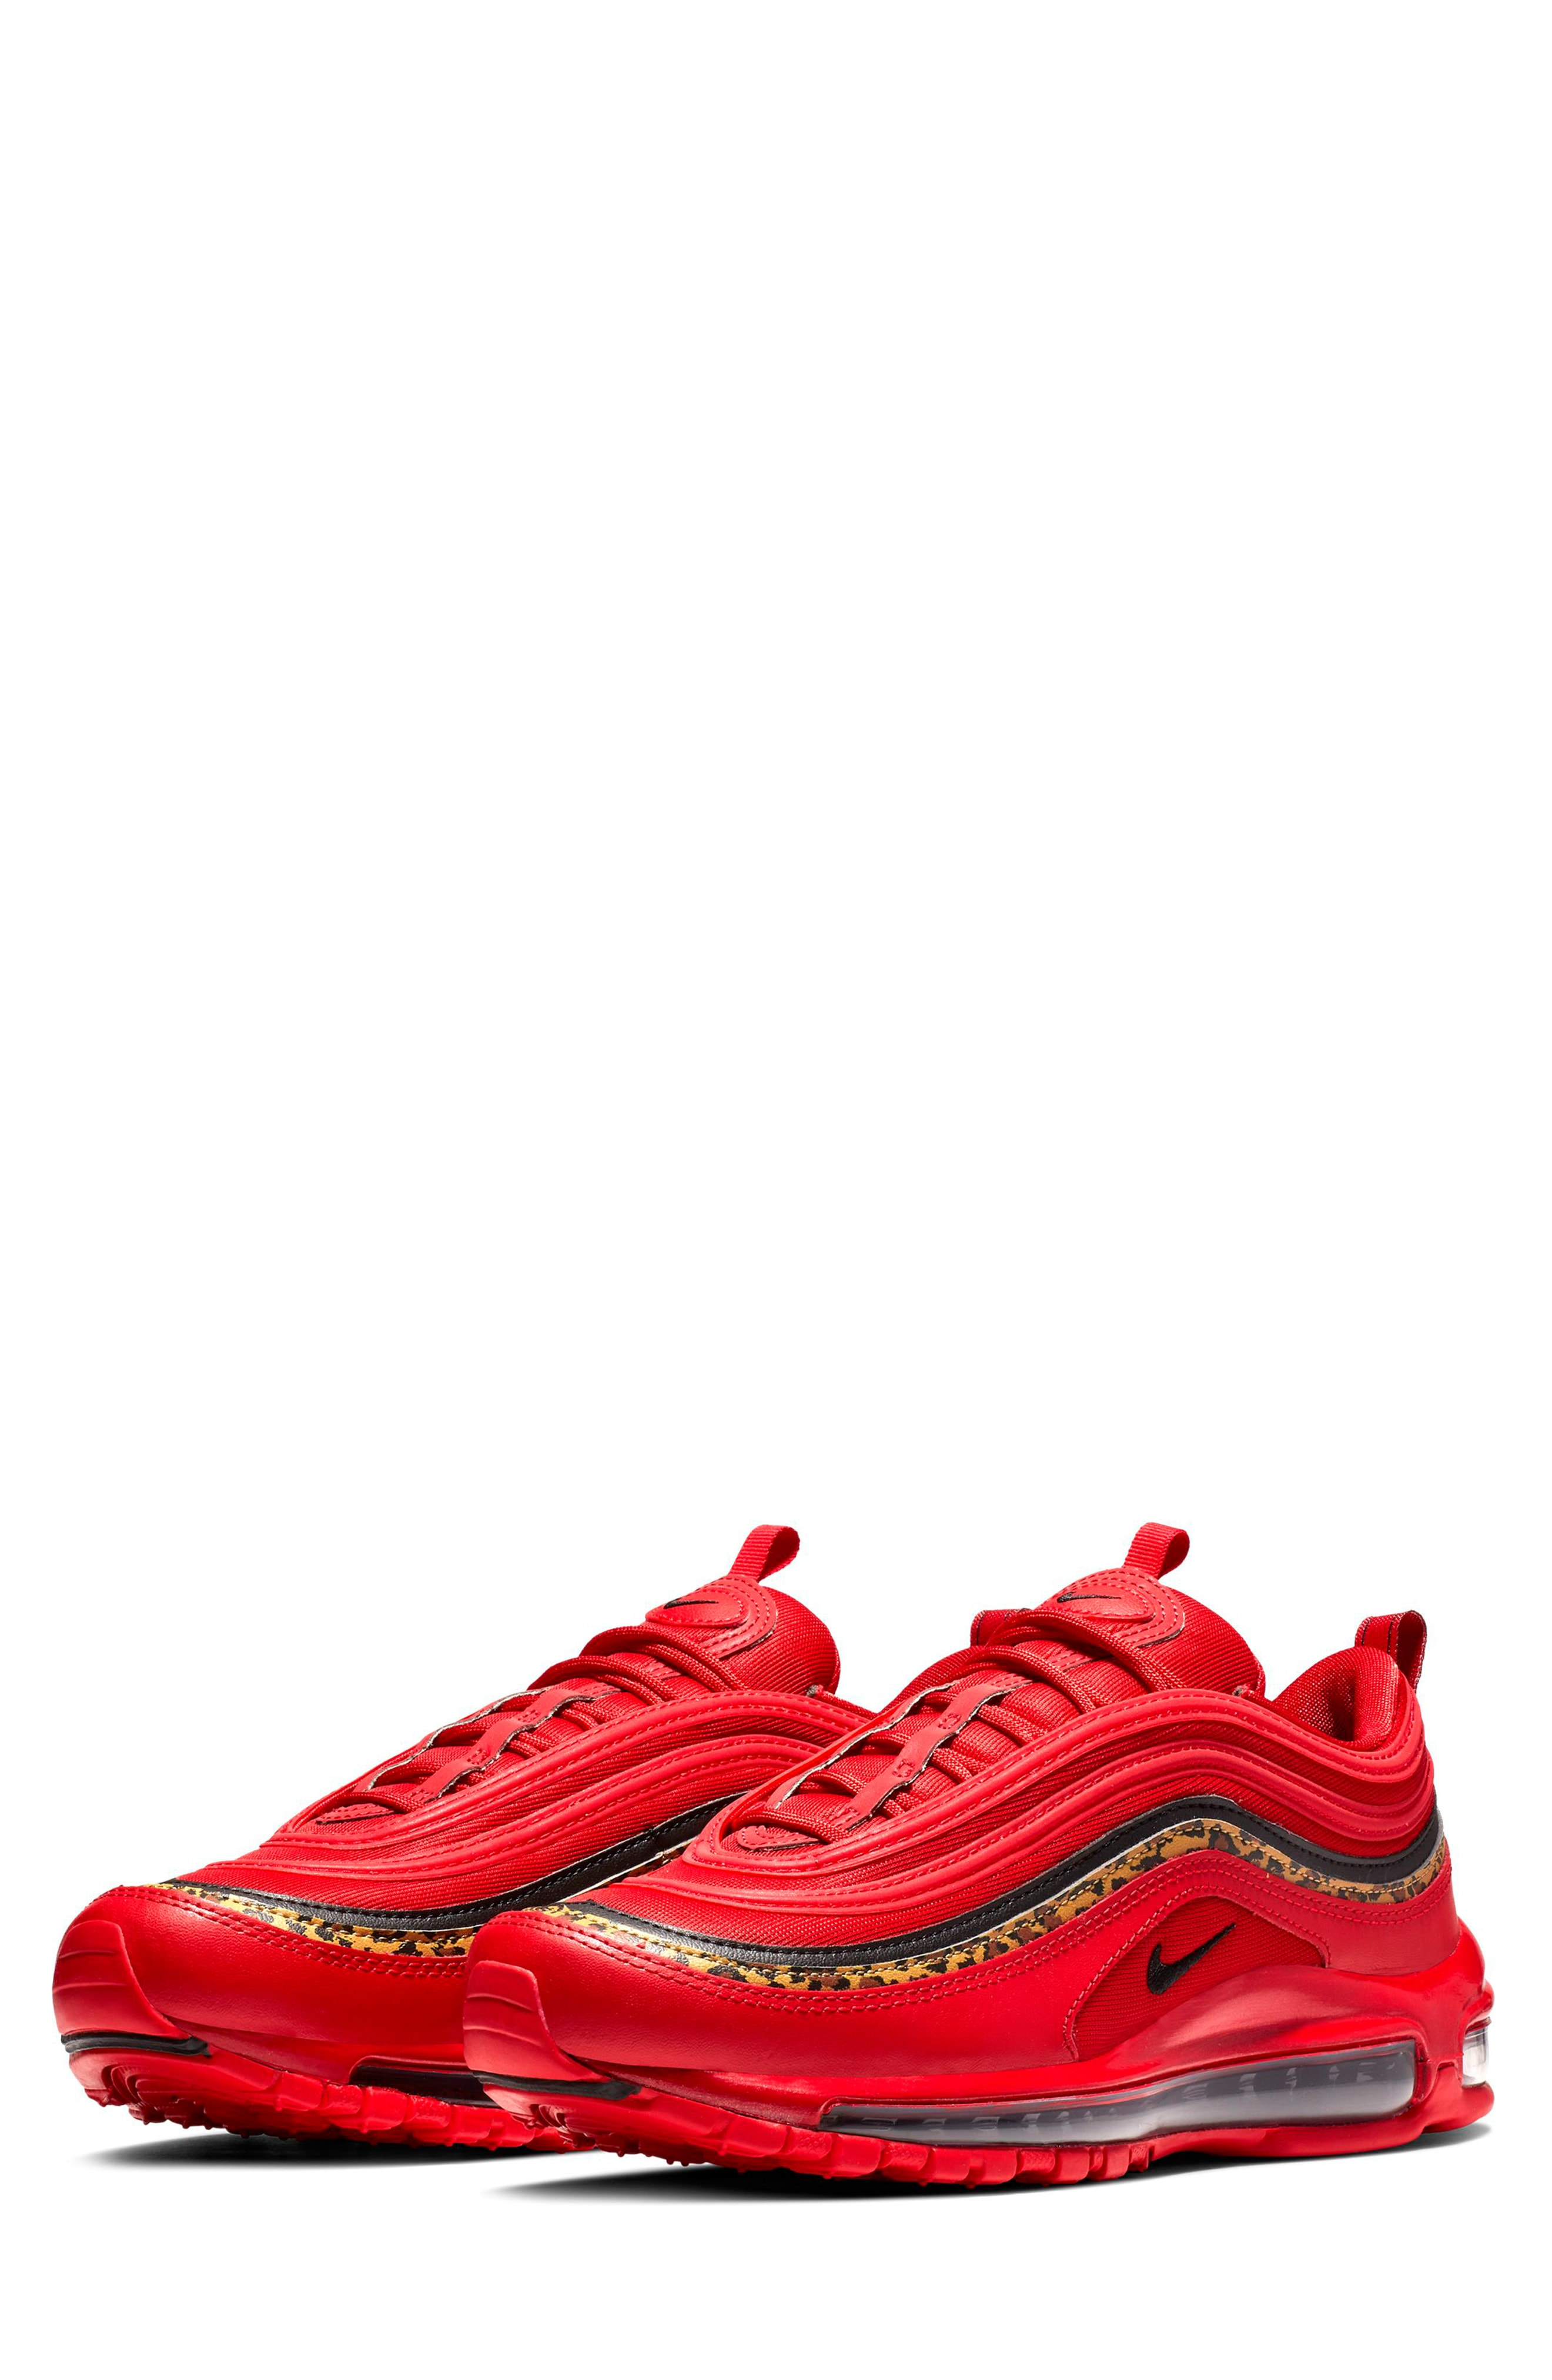 Women's Red Sneakers & Running Shoes | Nordstrom